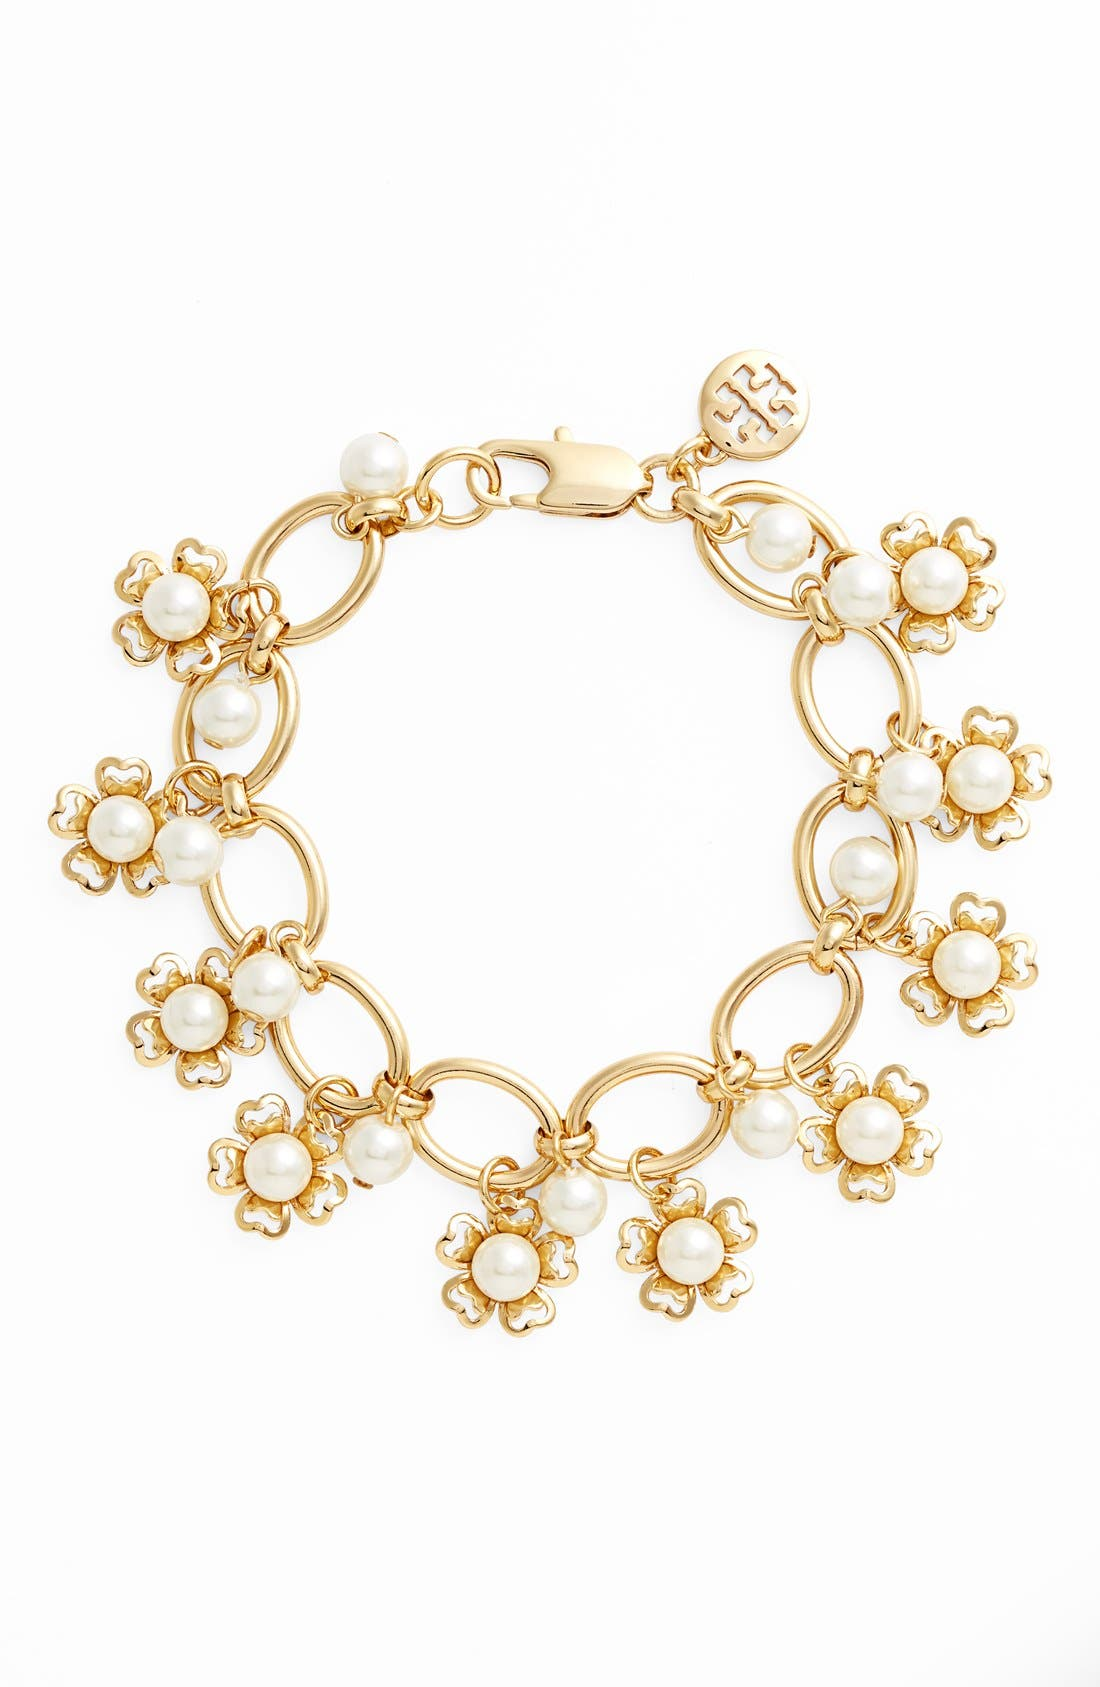 Main Image - Tory Burch 'Katie' Glass Pearl Floral Cluster Bracelet